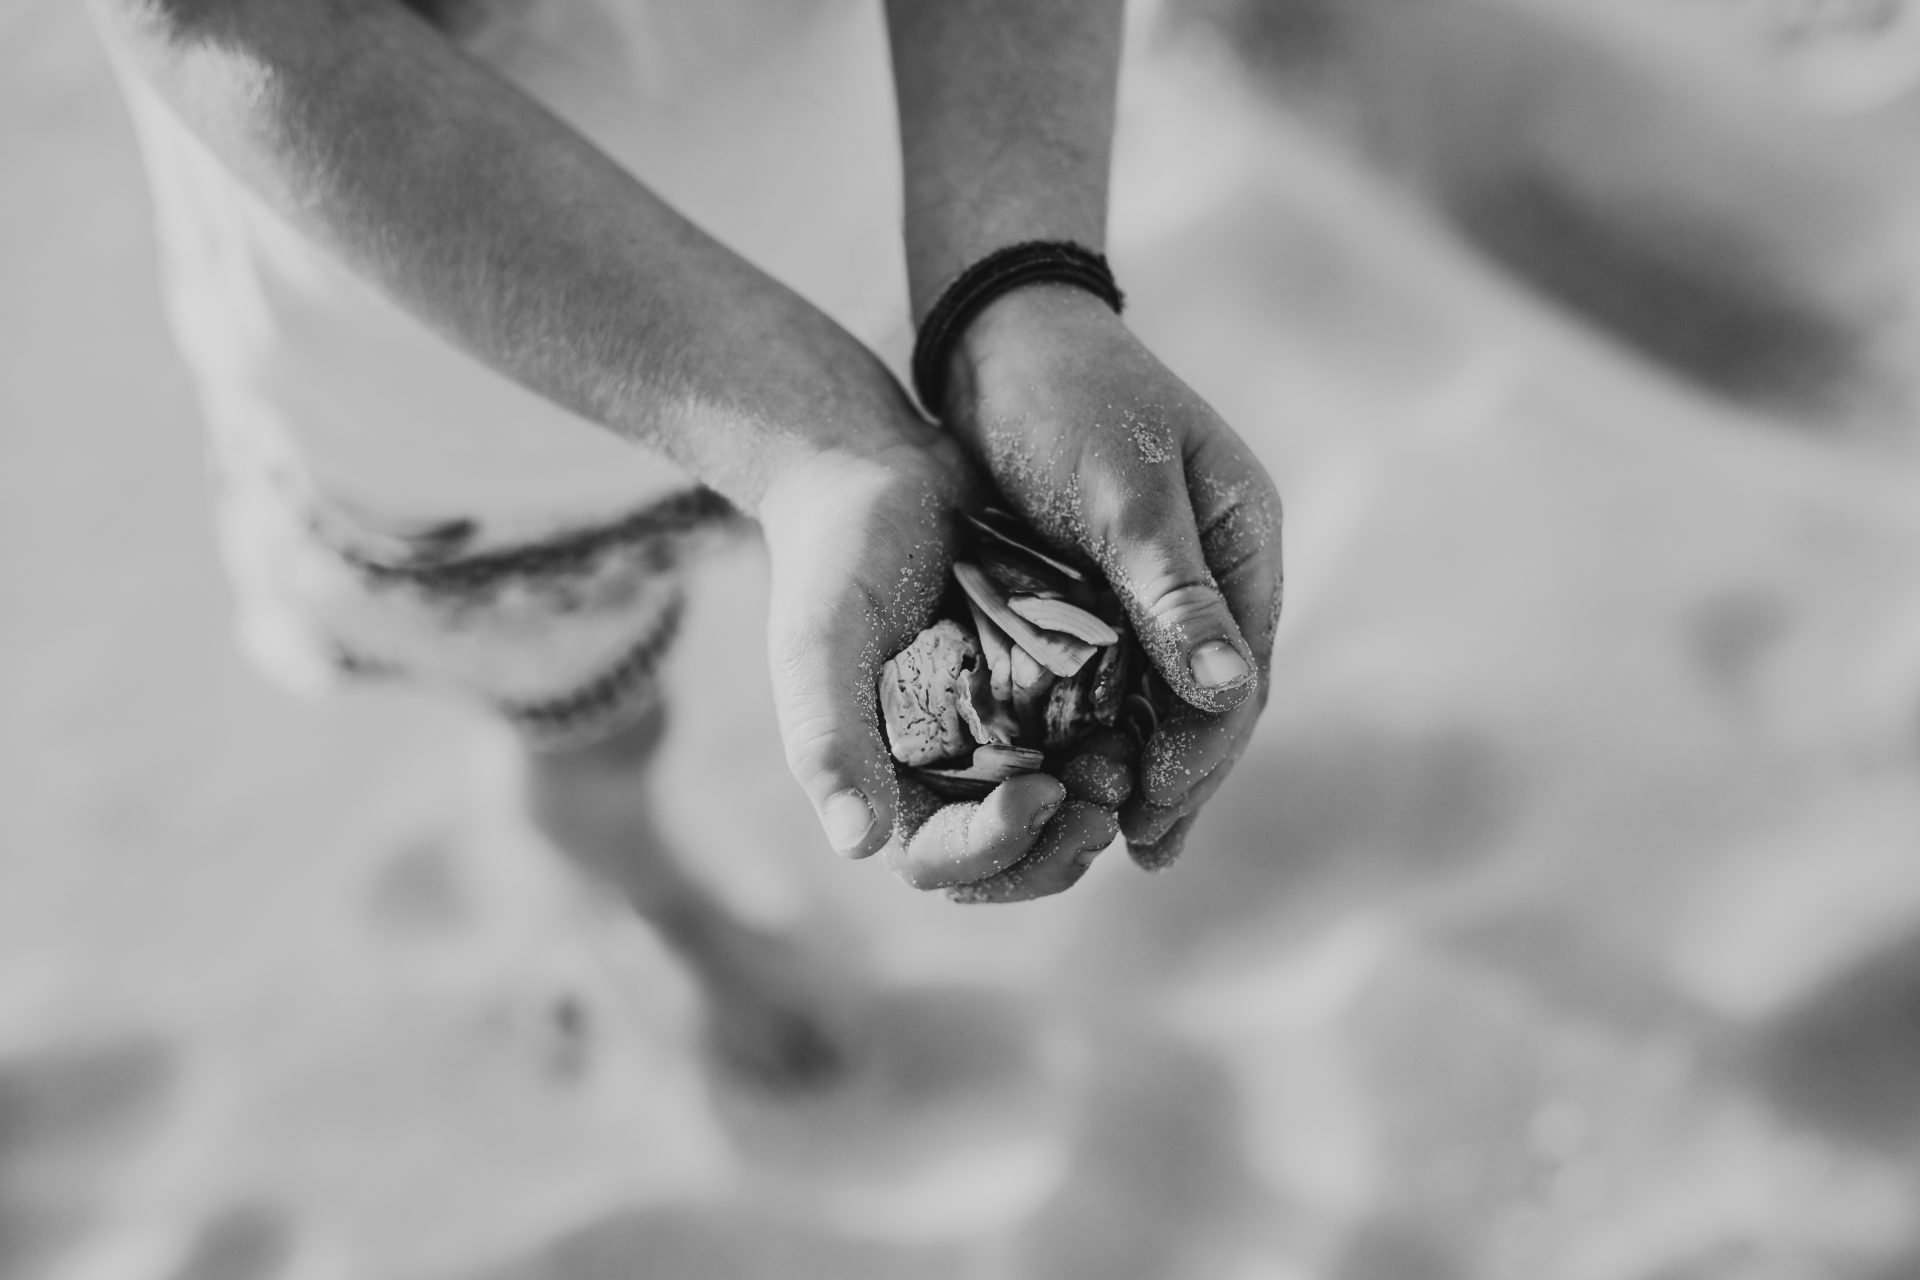 Black and white image of hands cupped together holding shells